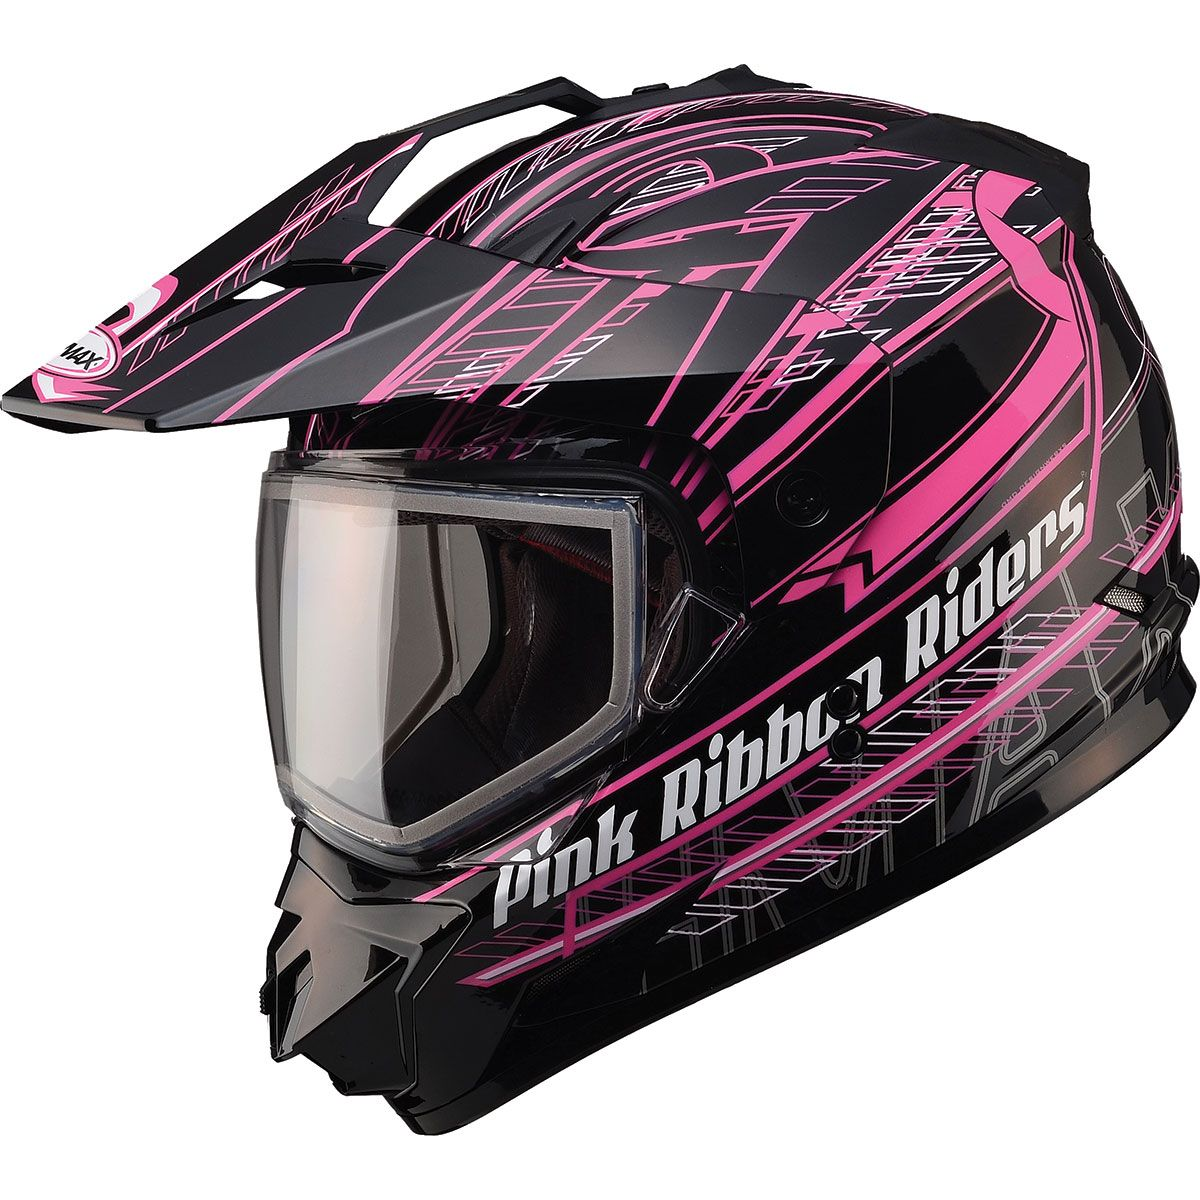 Check out the deal on GMAX GM11S Pink Ribbon Snow Sport Snowmobile Helmet at First Place Parts